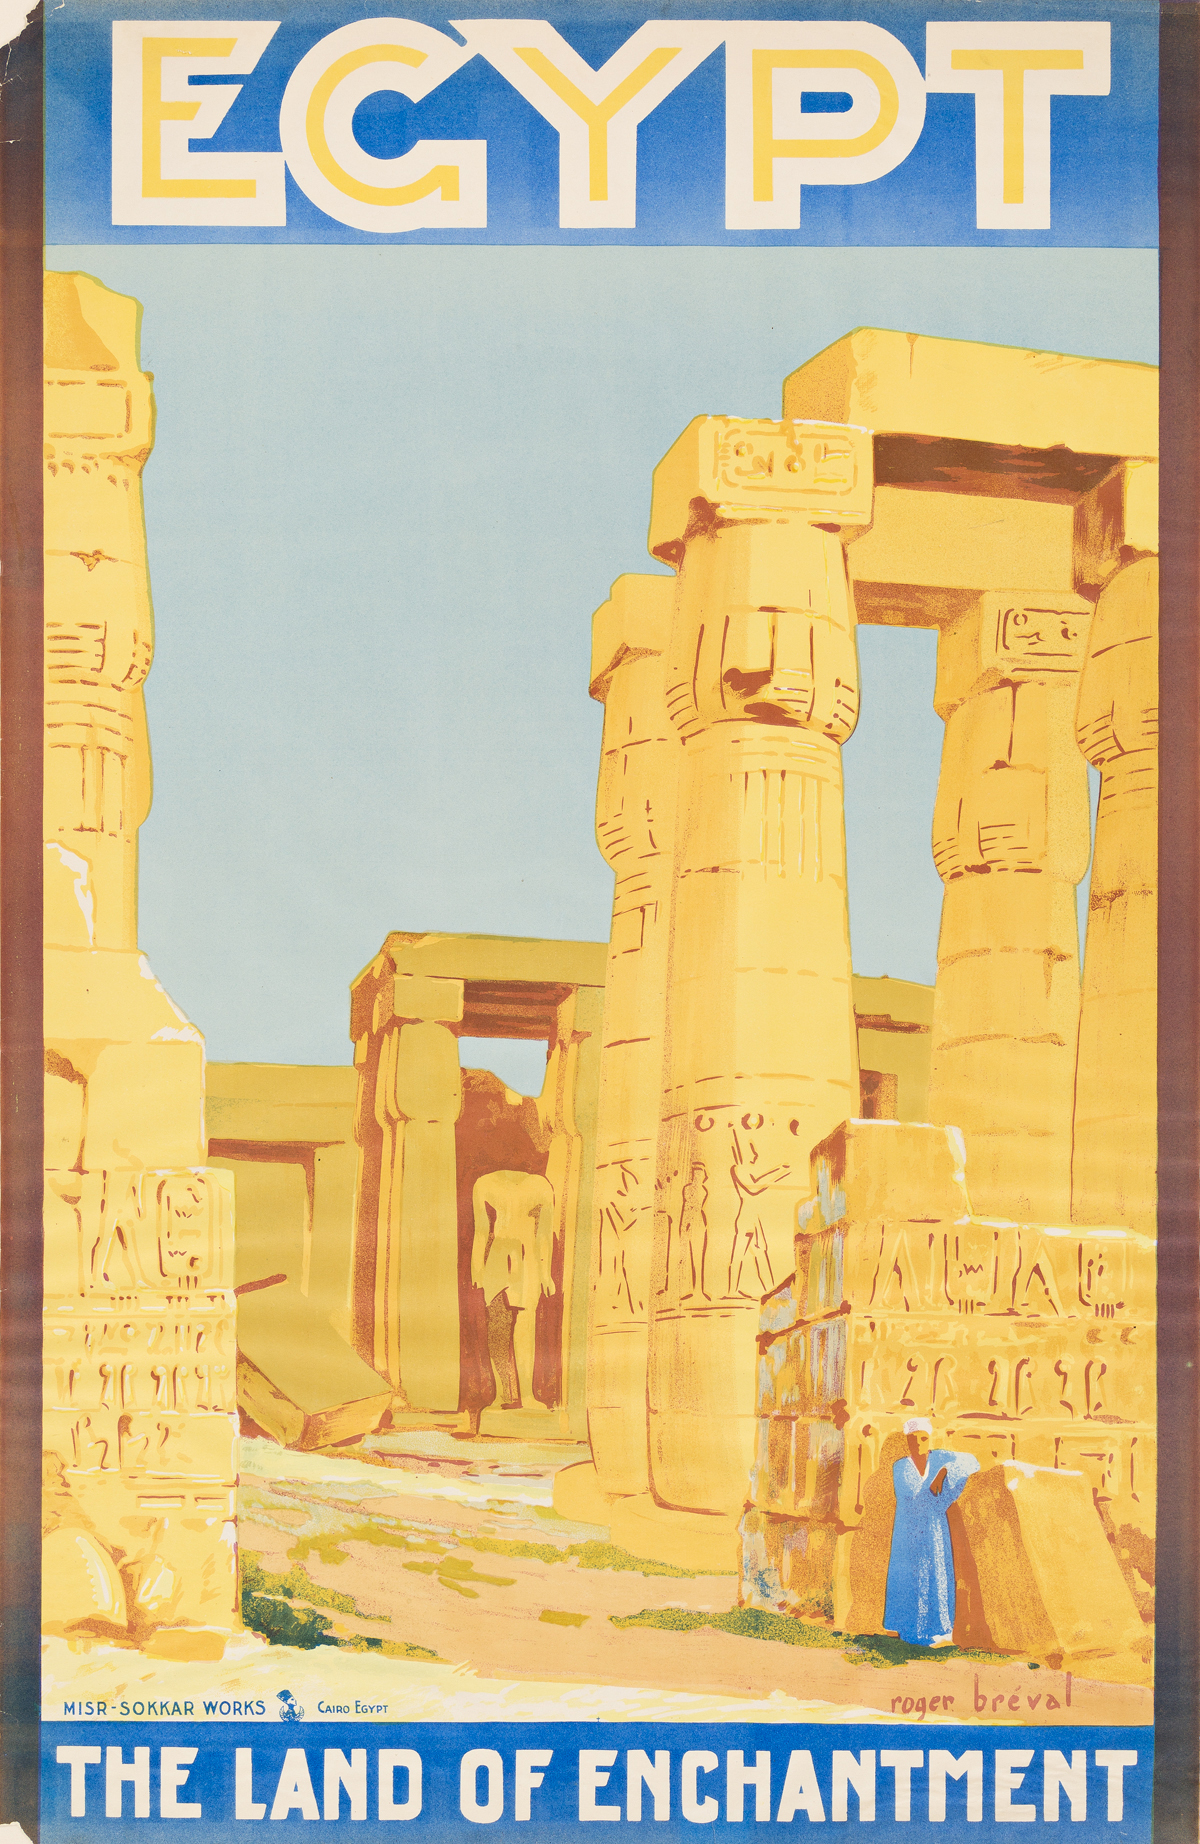 Roger-Bréval-(Dates-Unknown)--EGYPT--THE-LAND-OF-ENCHANTMENT